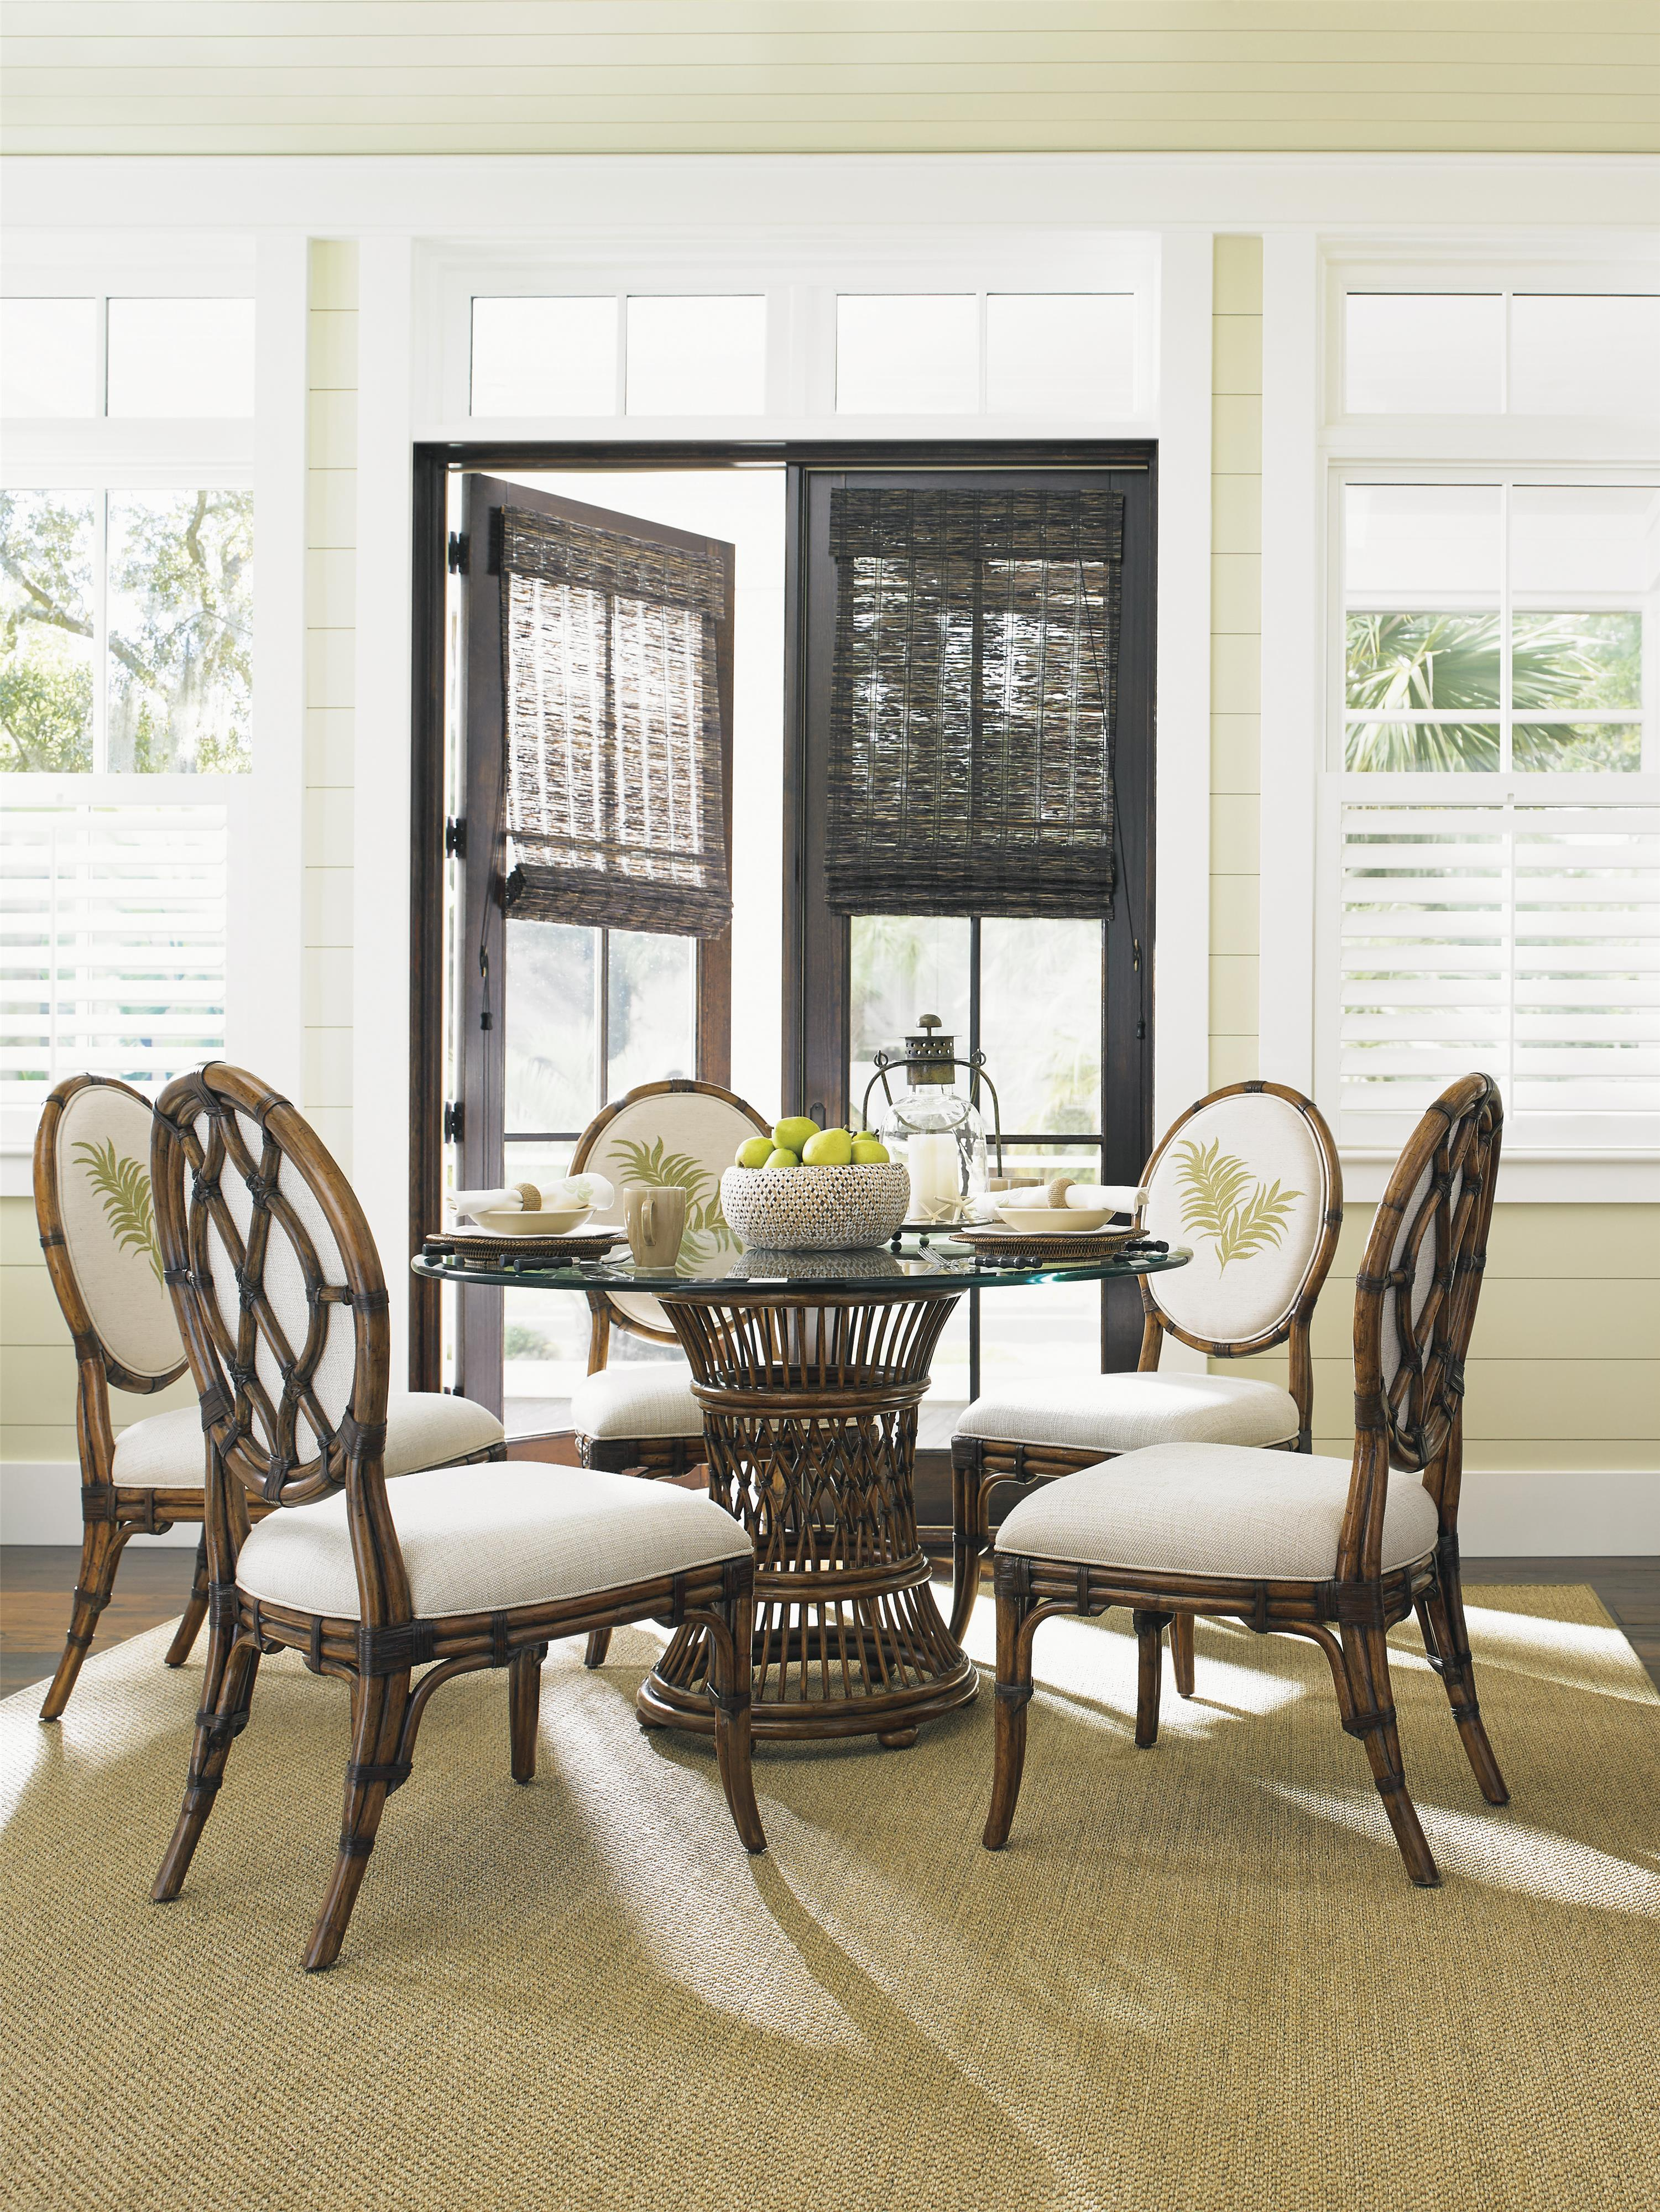 Bali Hai Tropical 7 Piece Dining Set by Tommy Bahama Home at Baer's Furniture